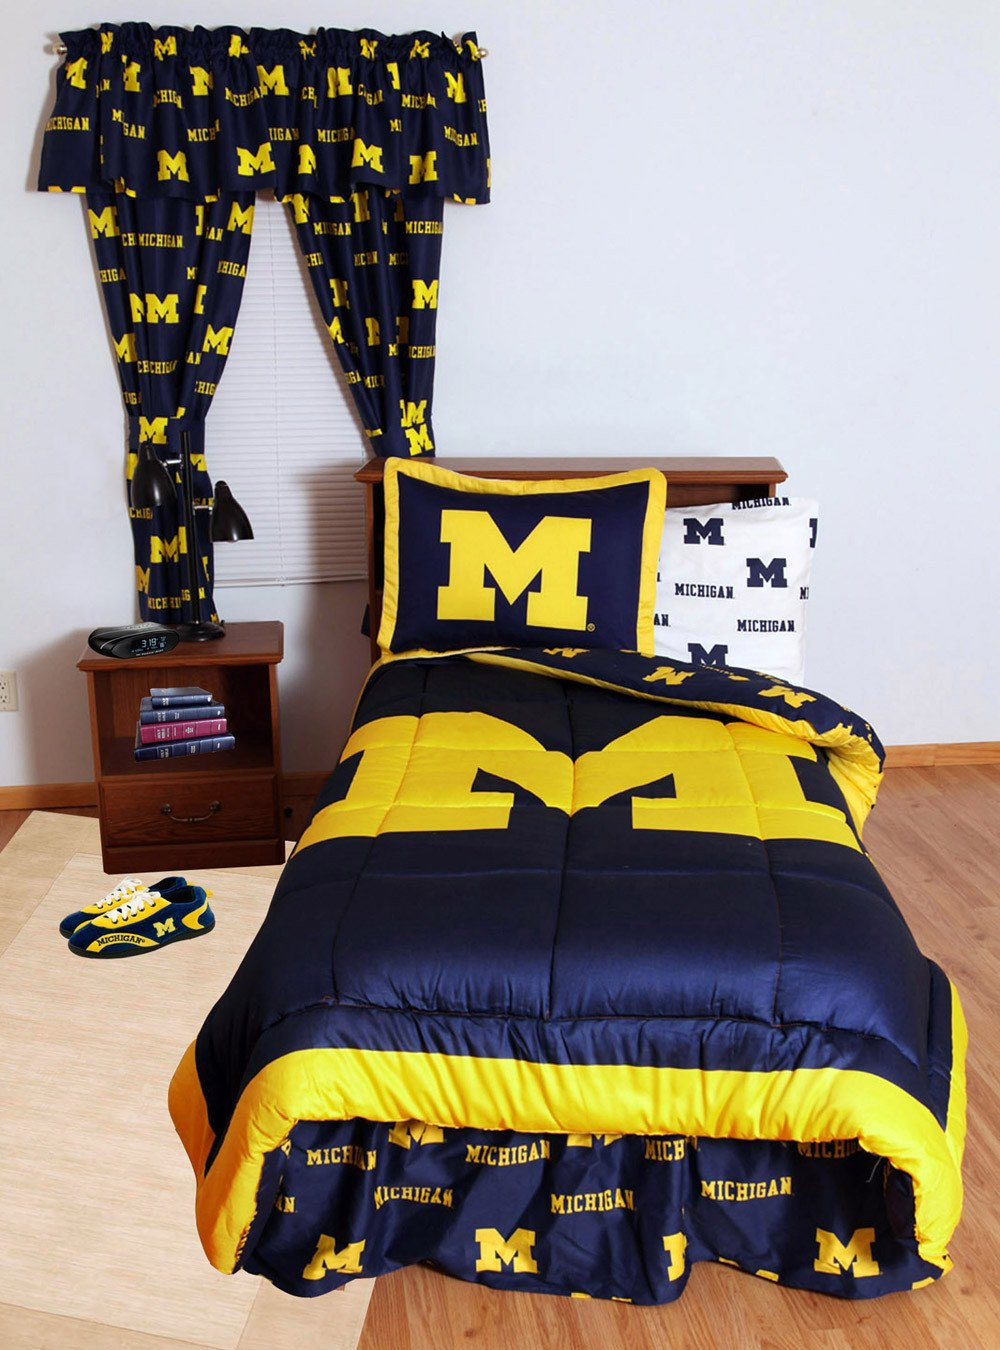 Michigan Bed in a Bag King - With White Sheets - MICBBKGW by College Covers from College Covers